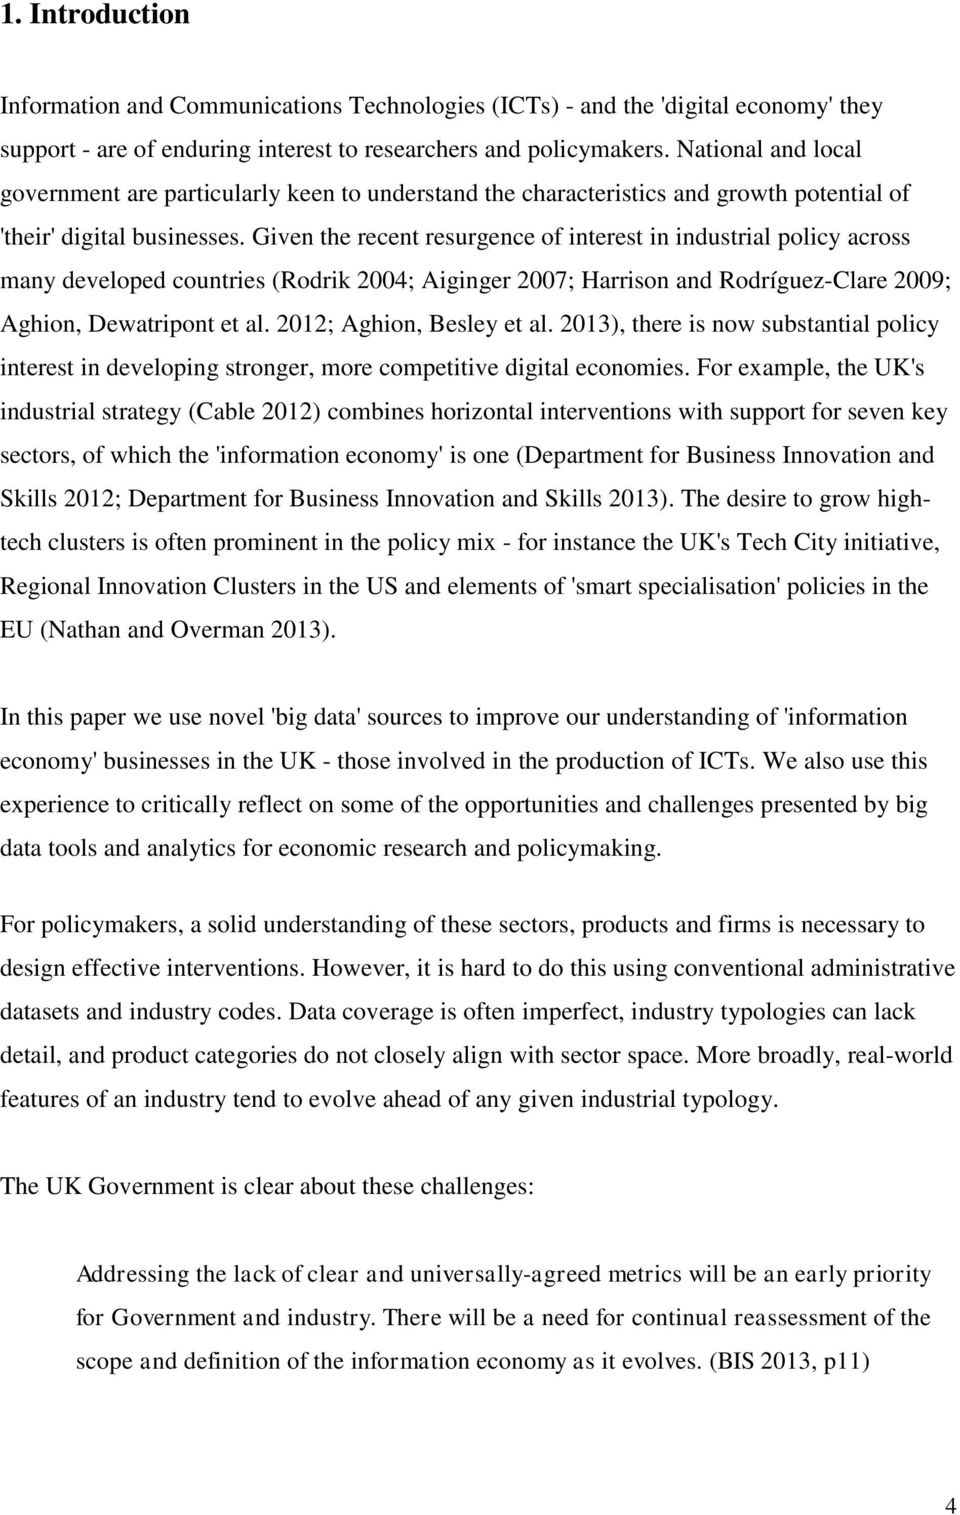 Given the recent resurgence of interest in industrial policy across many developed countries (Rodrik 2004; Aiginger 2007; Harrison and Rodríguez-Clare 2009; Aghion, Dewatripont et al.